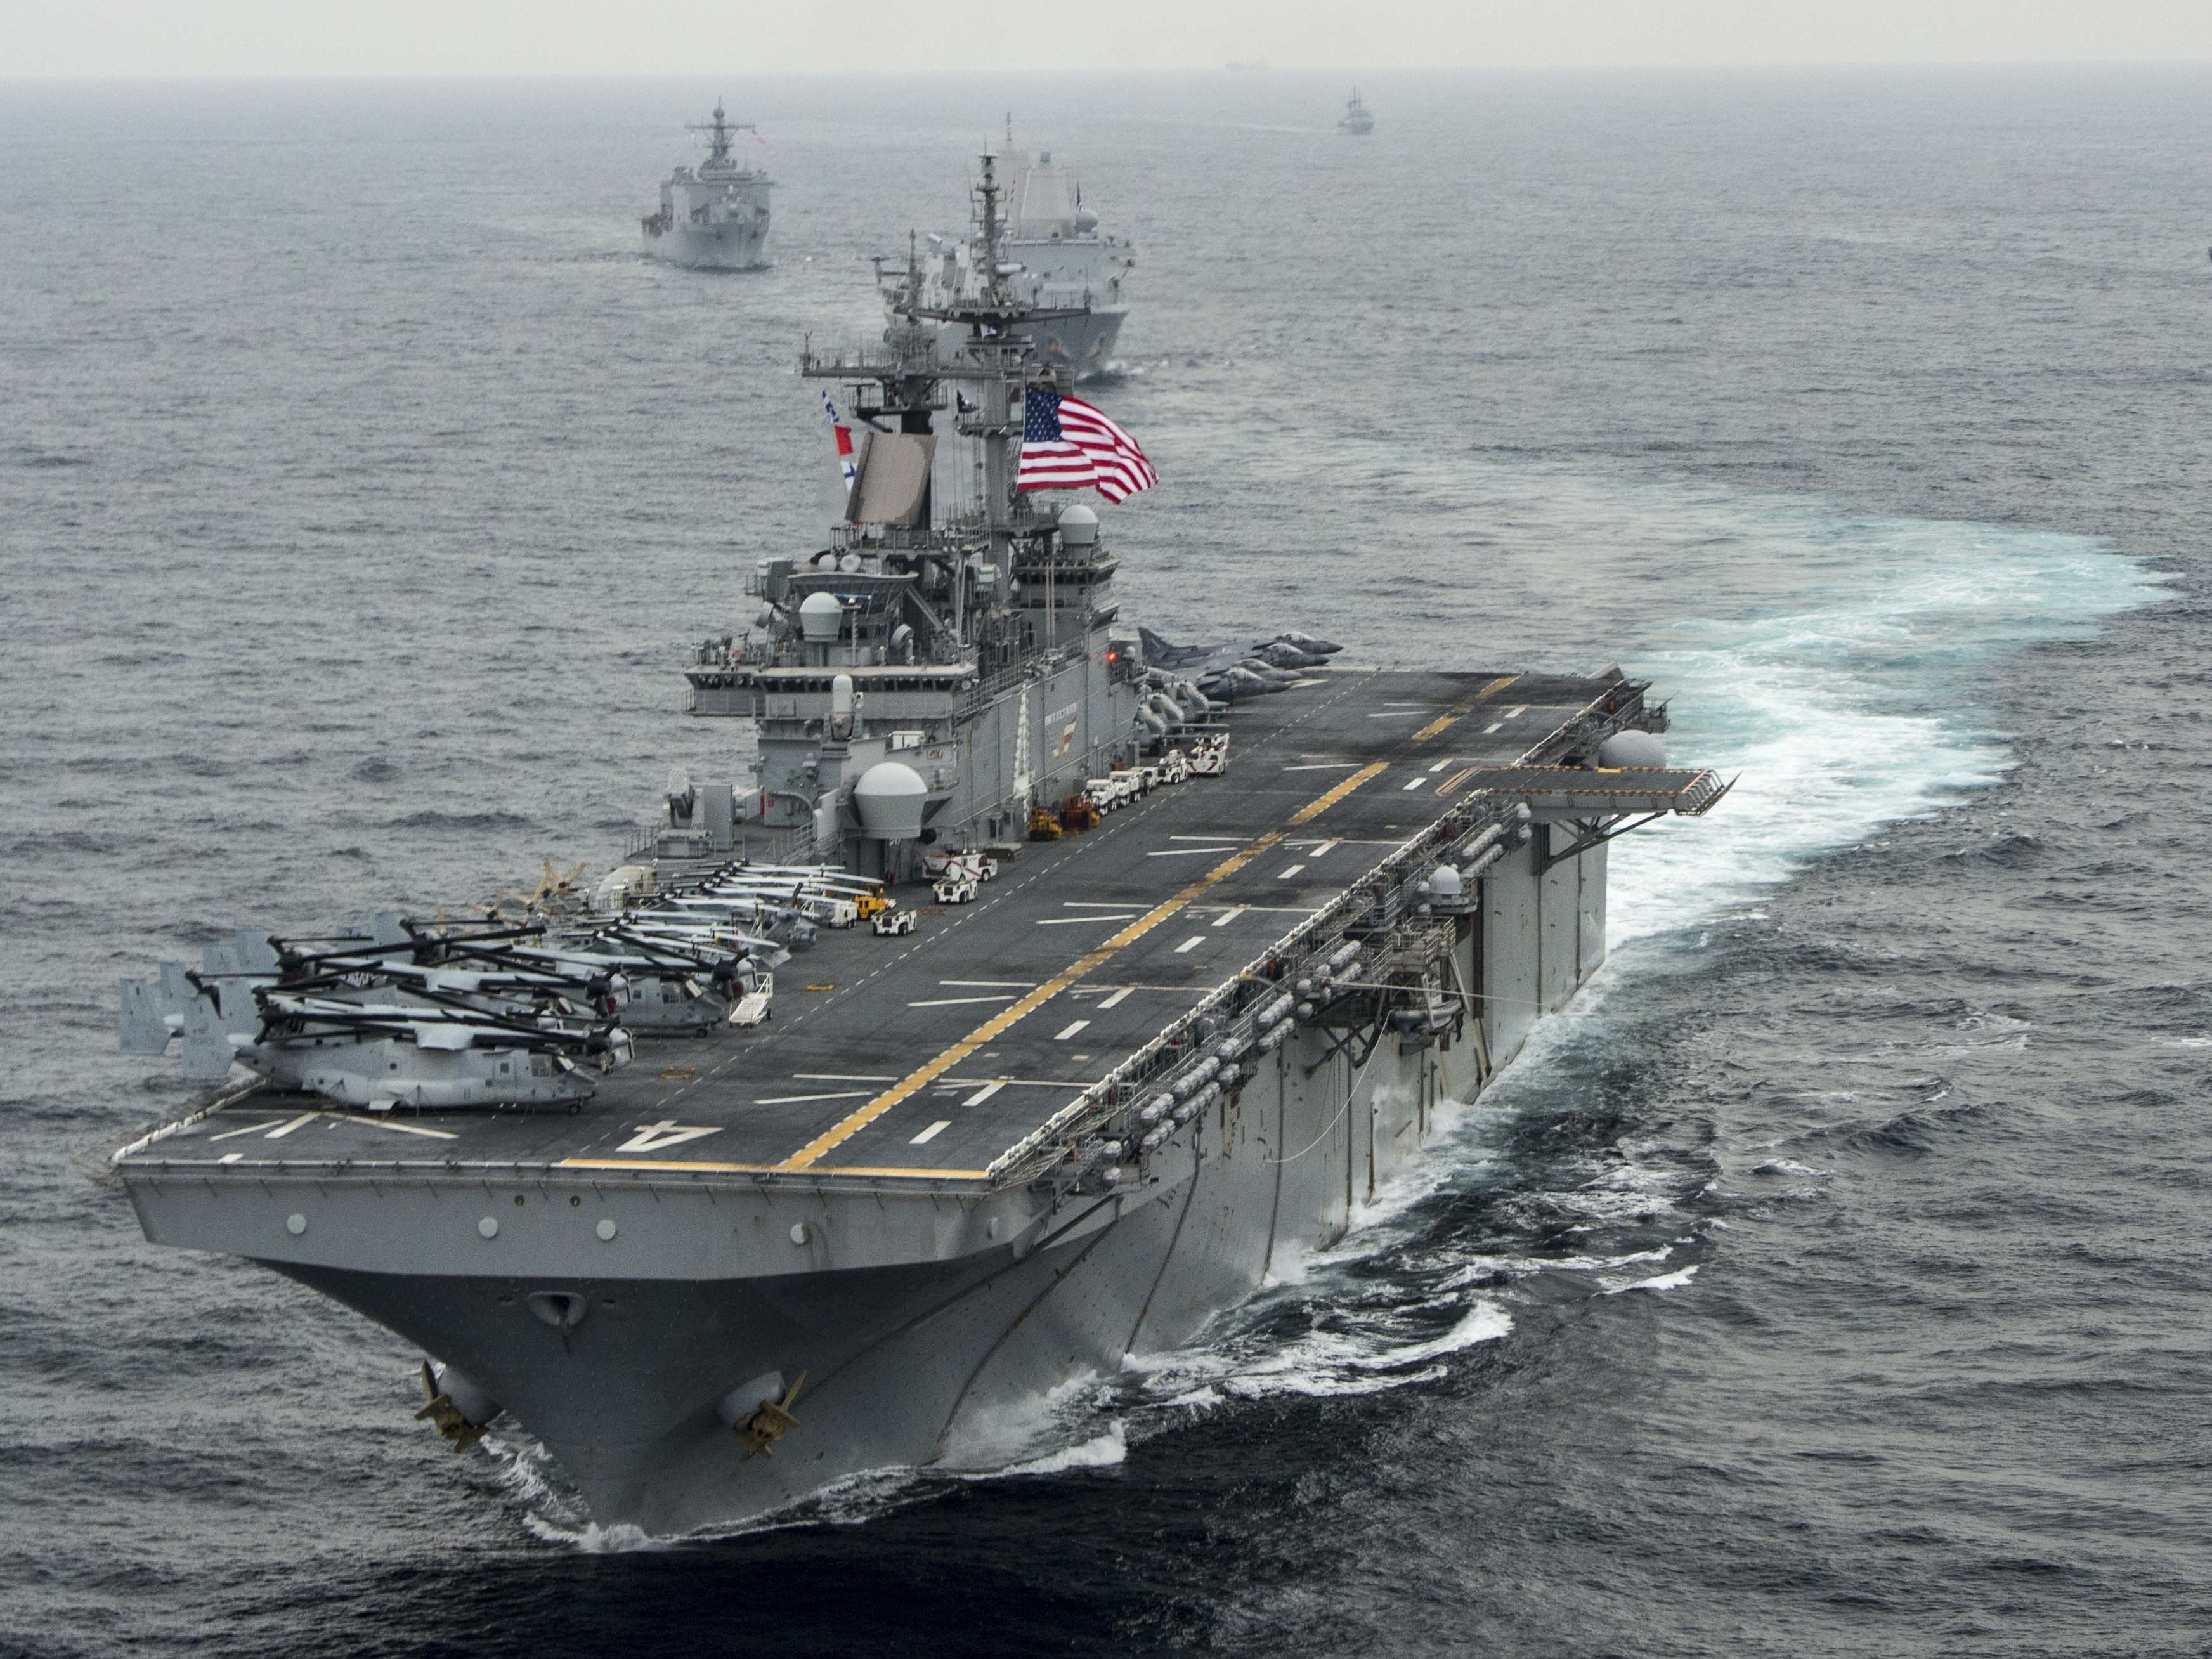 Trump says USA ship destroyed Iranian drone in Strait of Hormuz